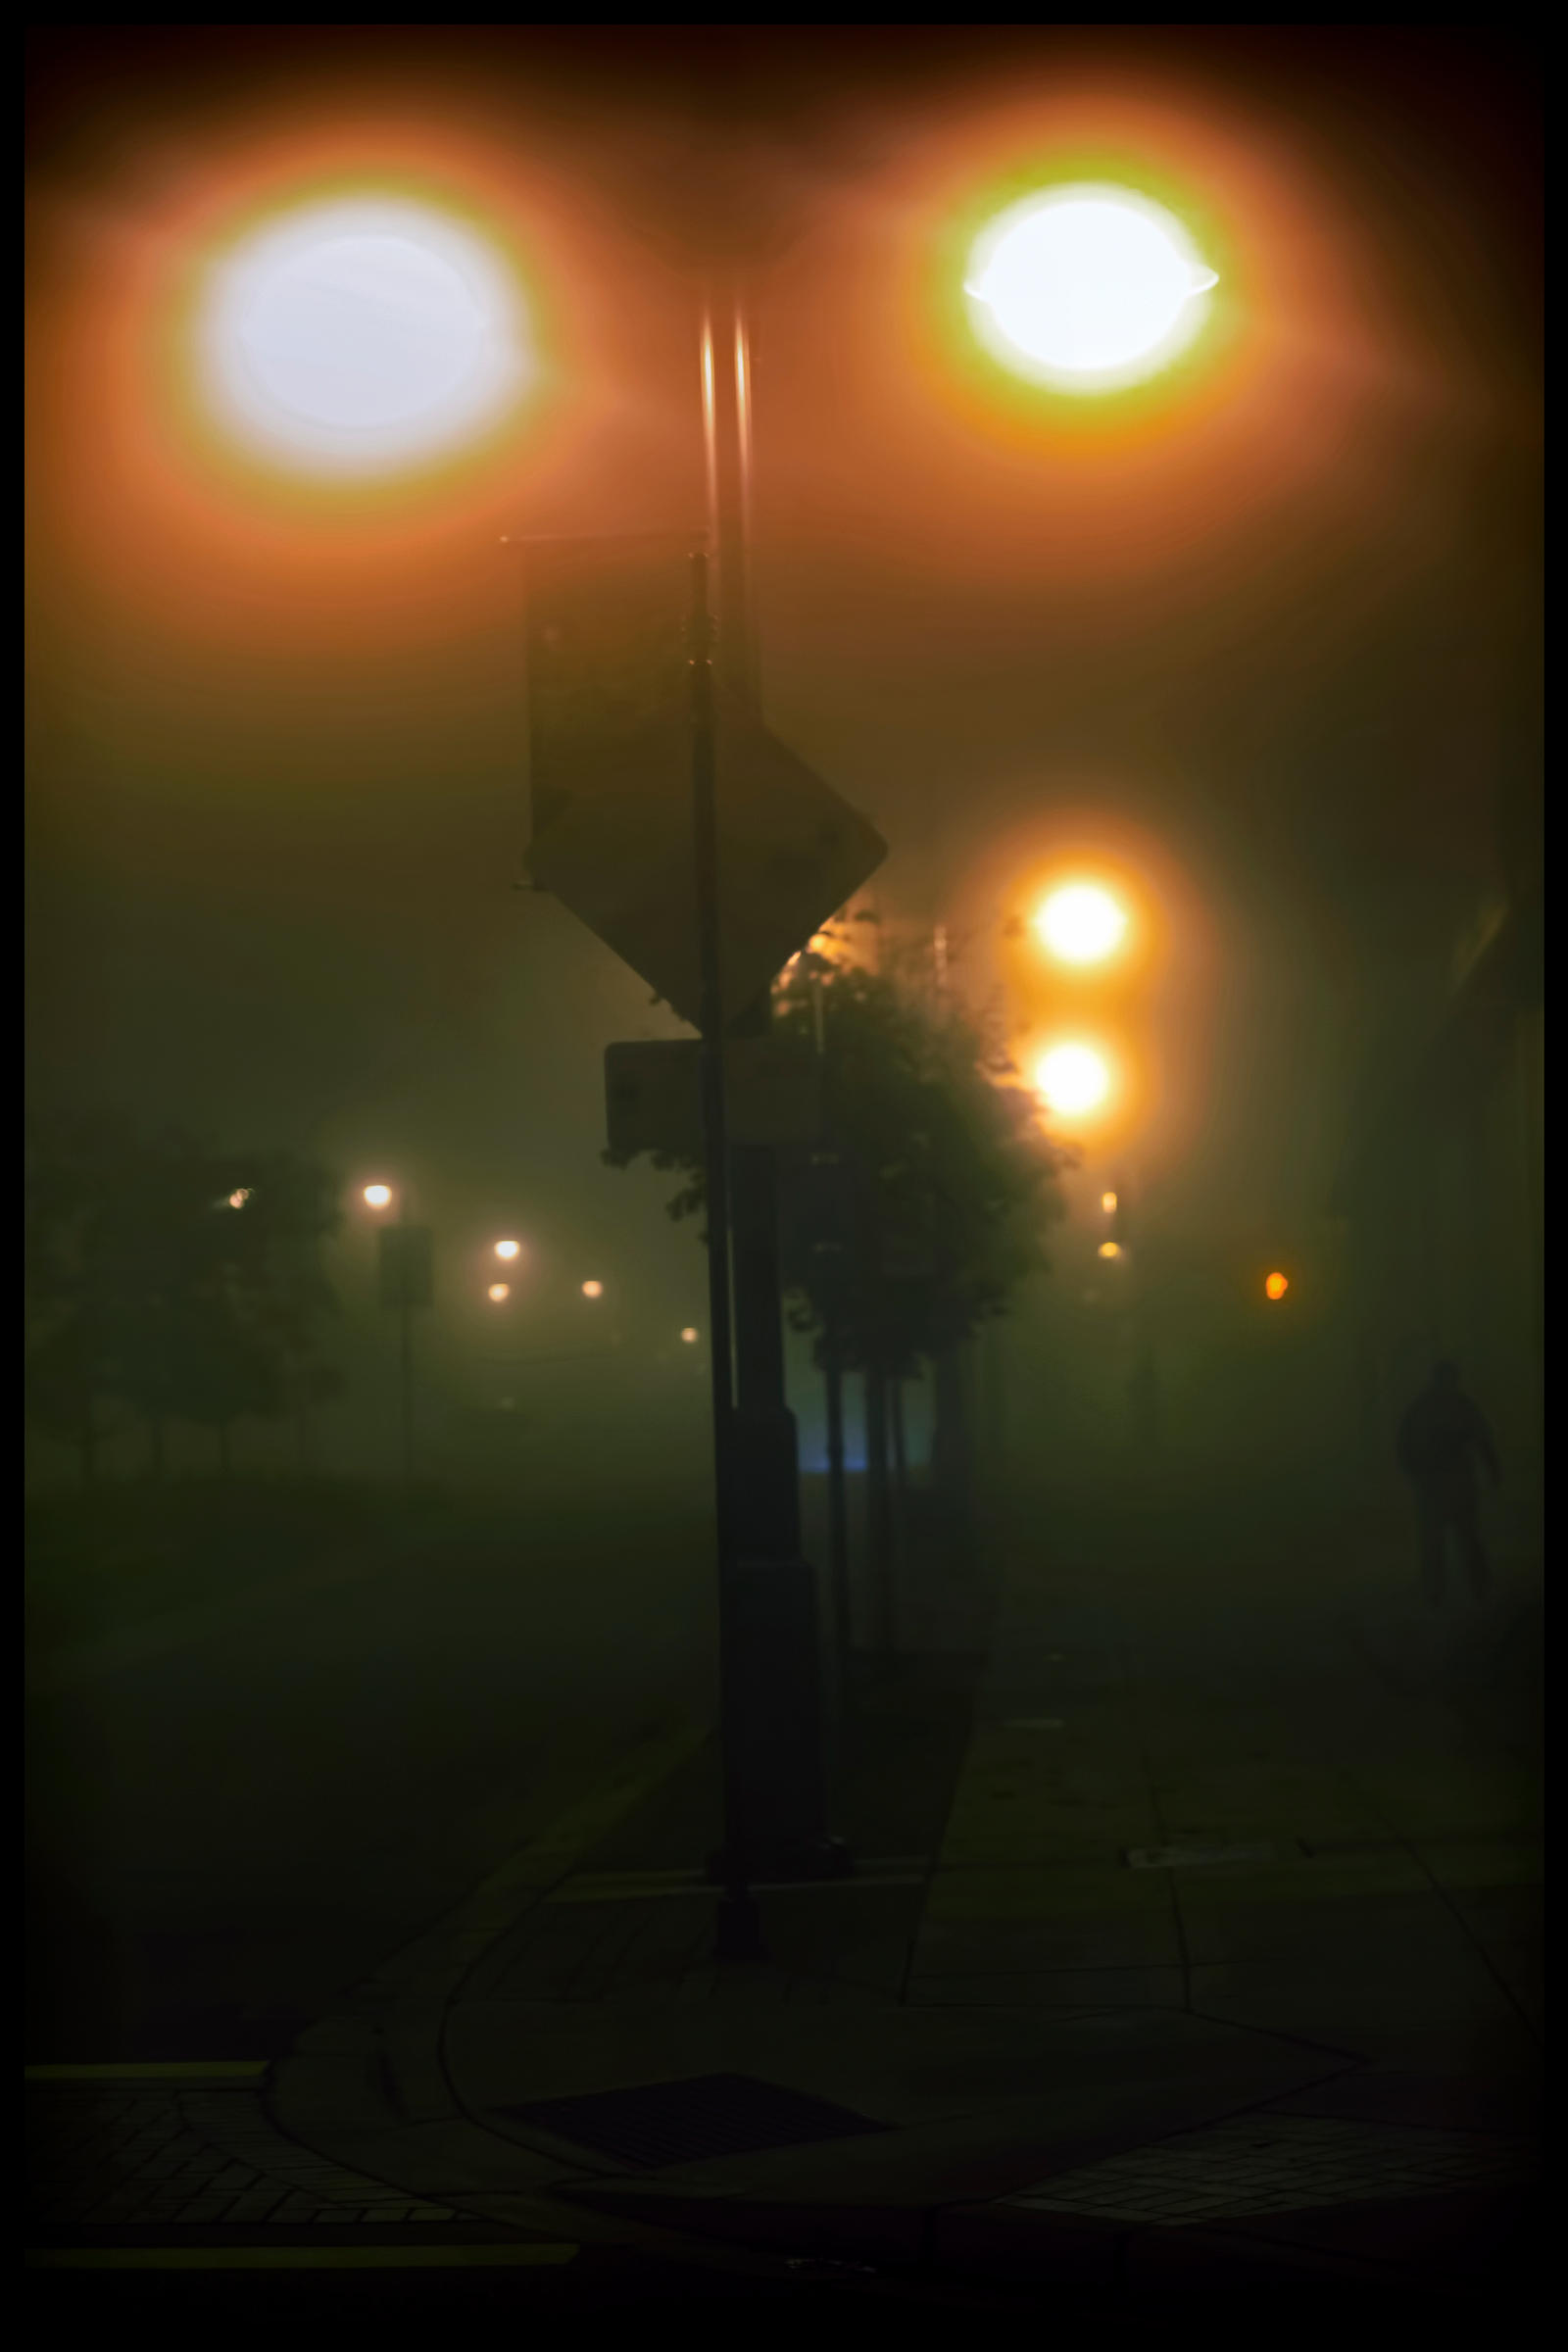 Foggy night by Mackingster